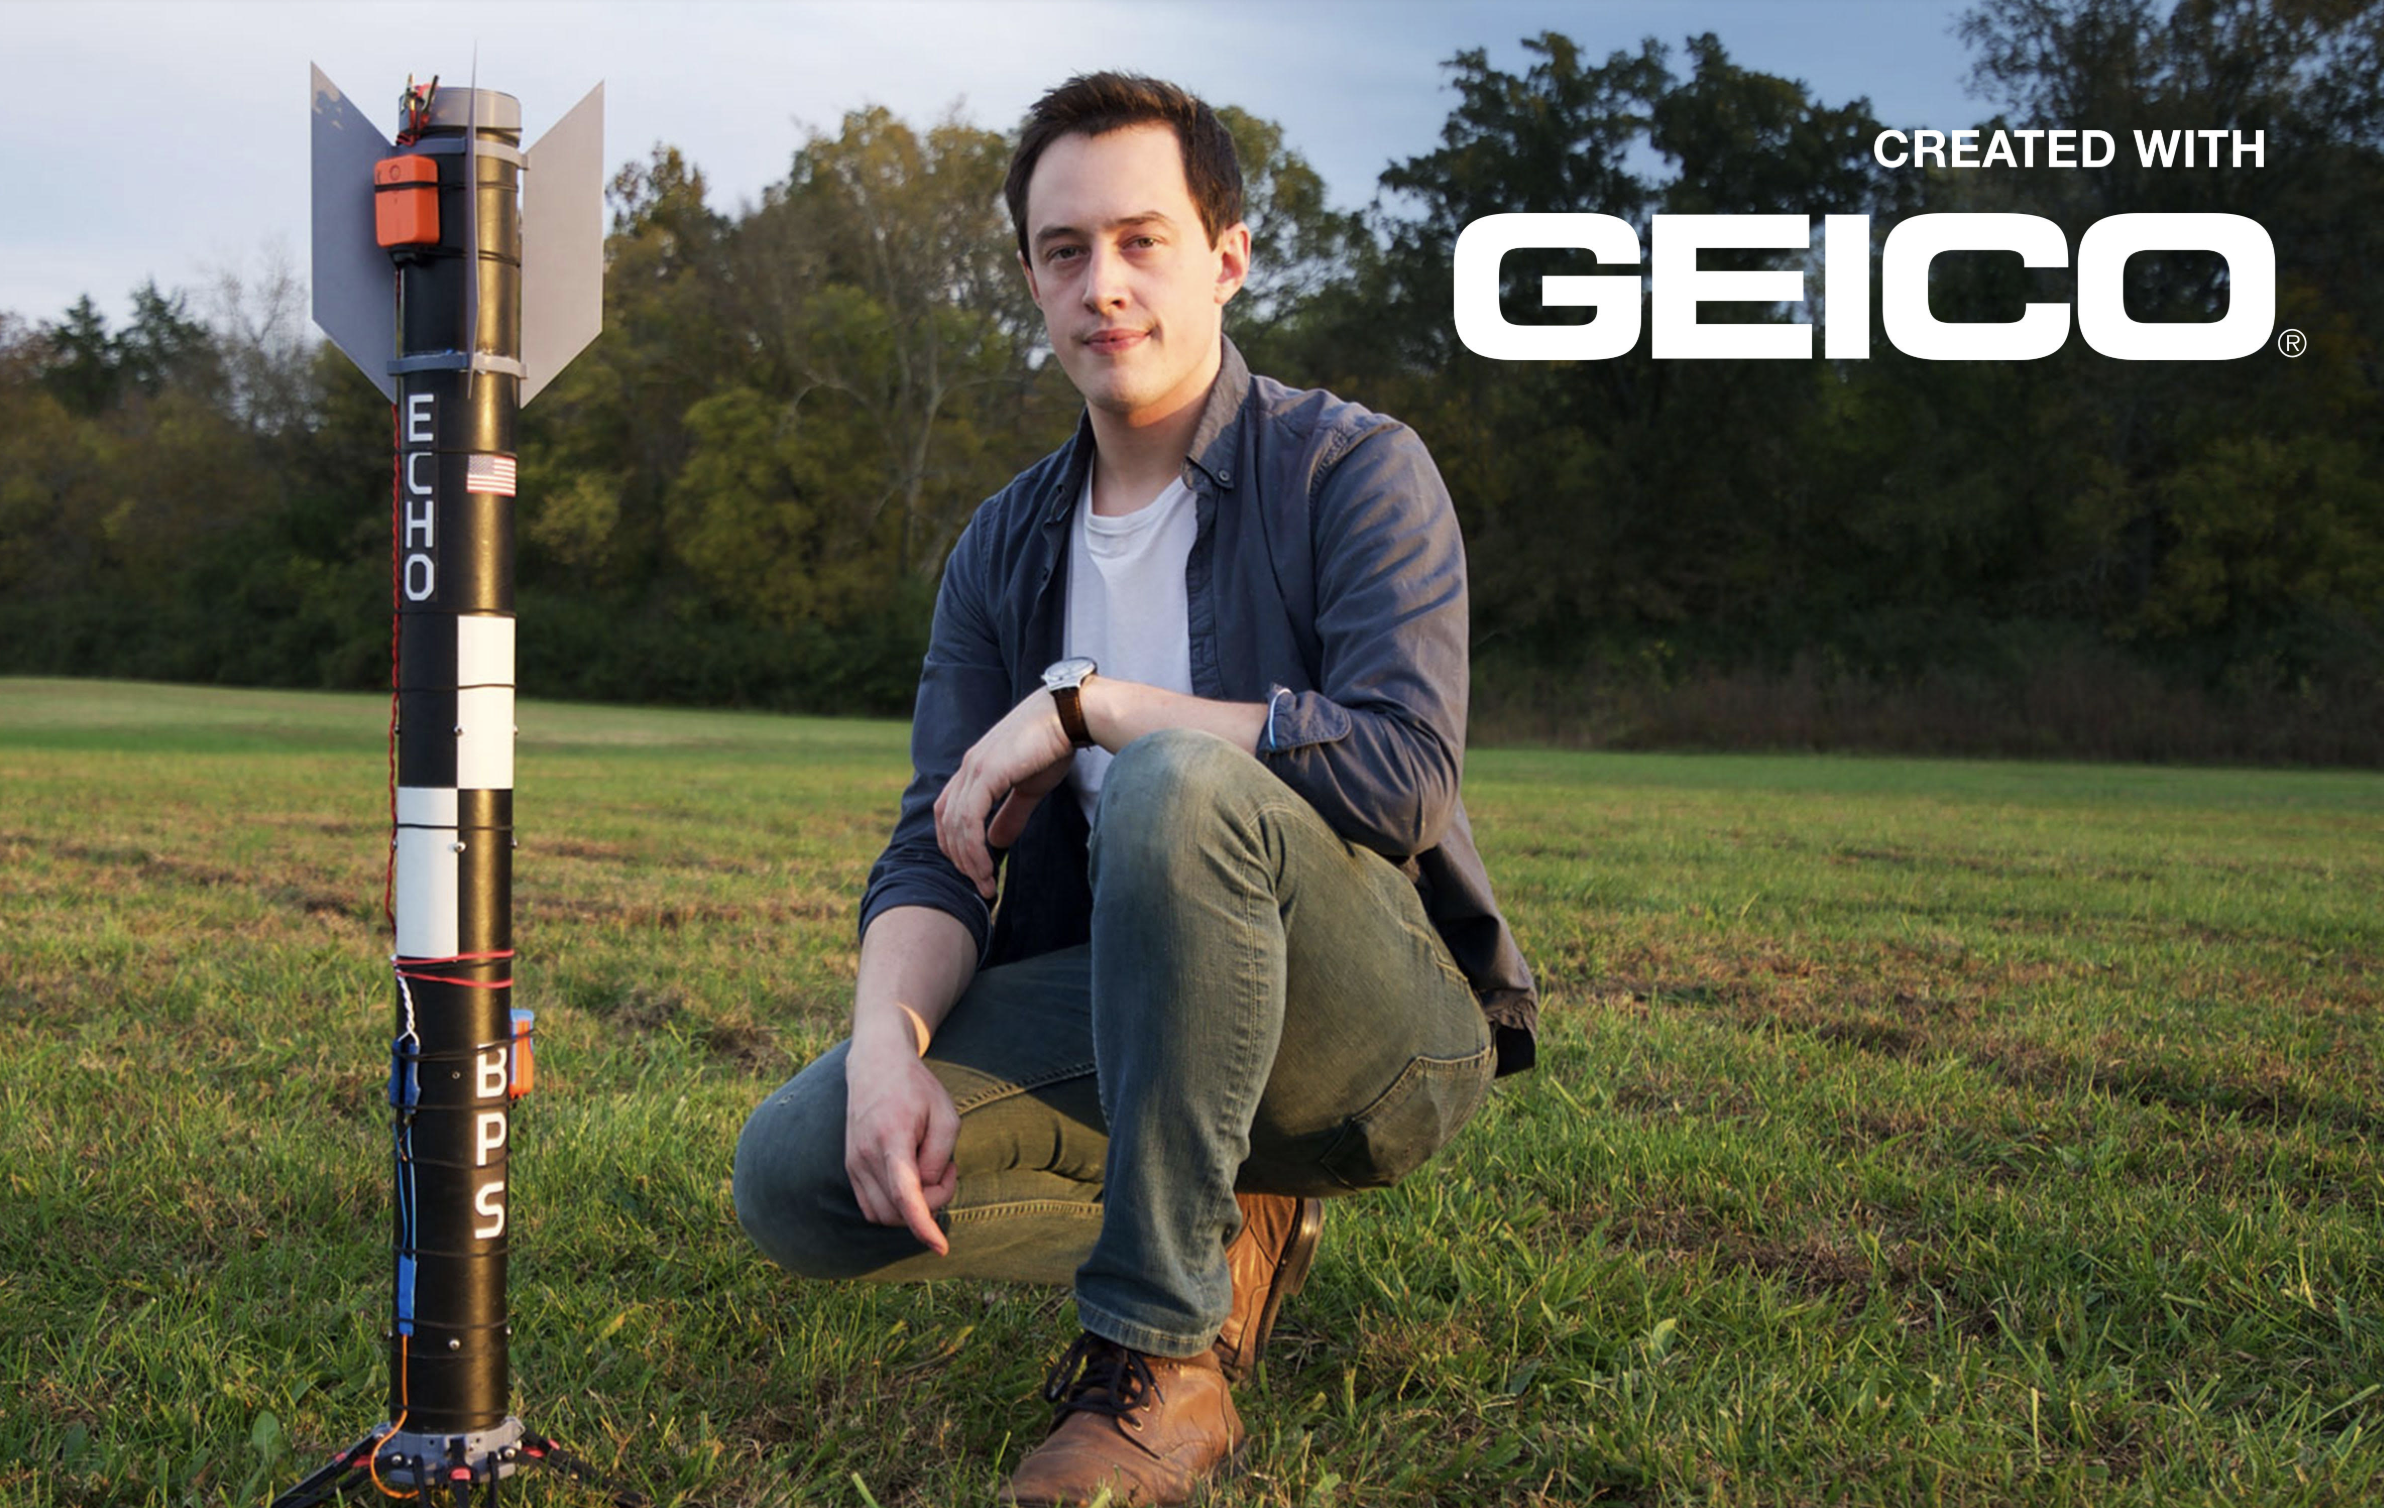 Watch a DIY Rocketeer Attempt to Land His Model Rocket Like SpaceX